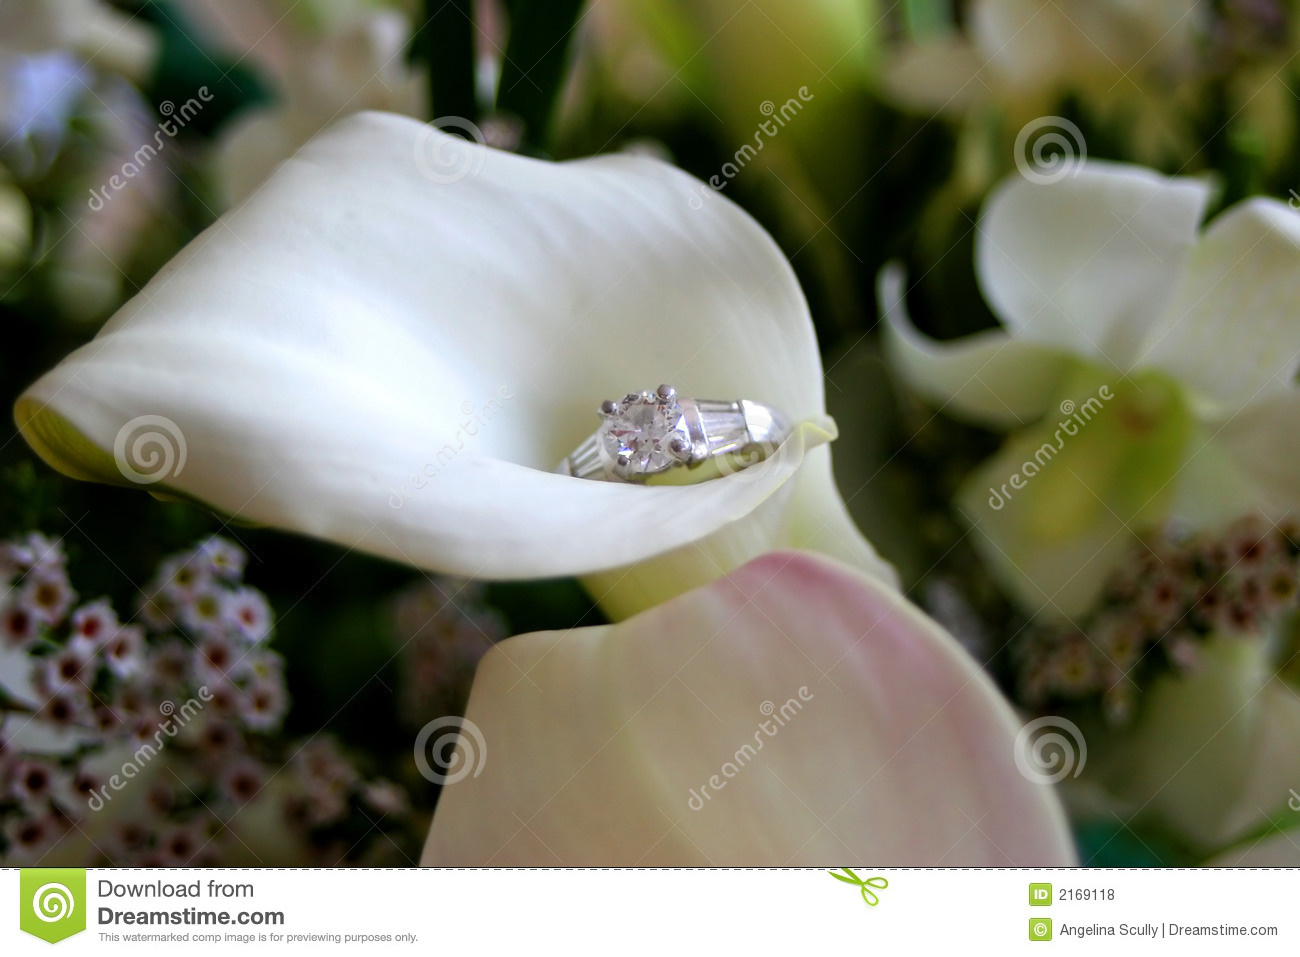 cfm diamonds nyc rings engagementringsre engagement lotus diamond lily mdc from ring princess in gold white